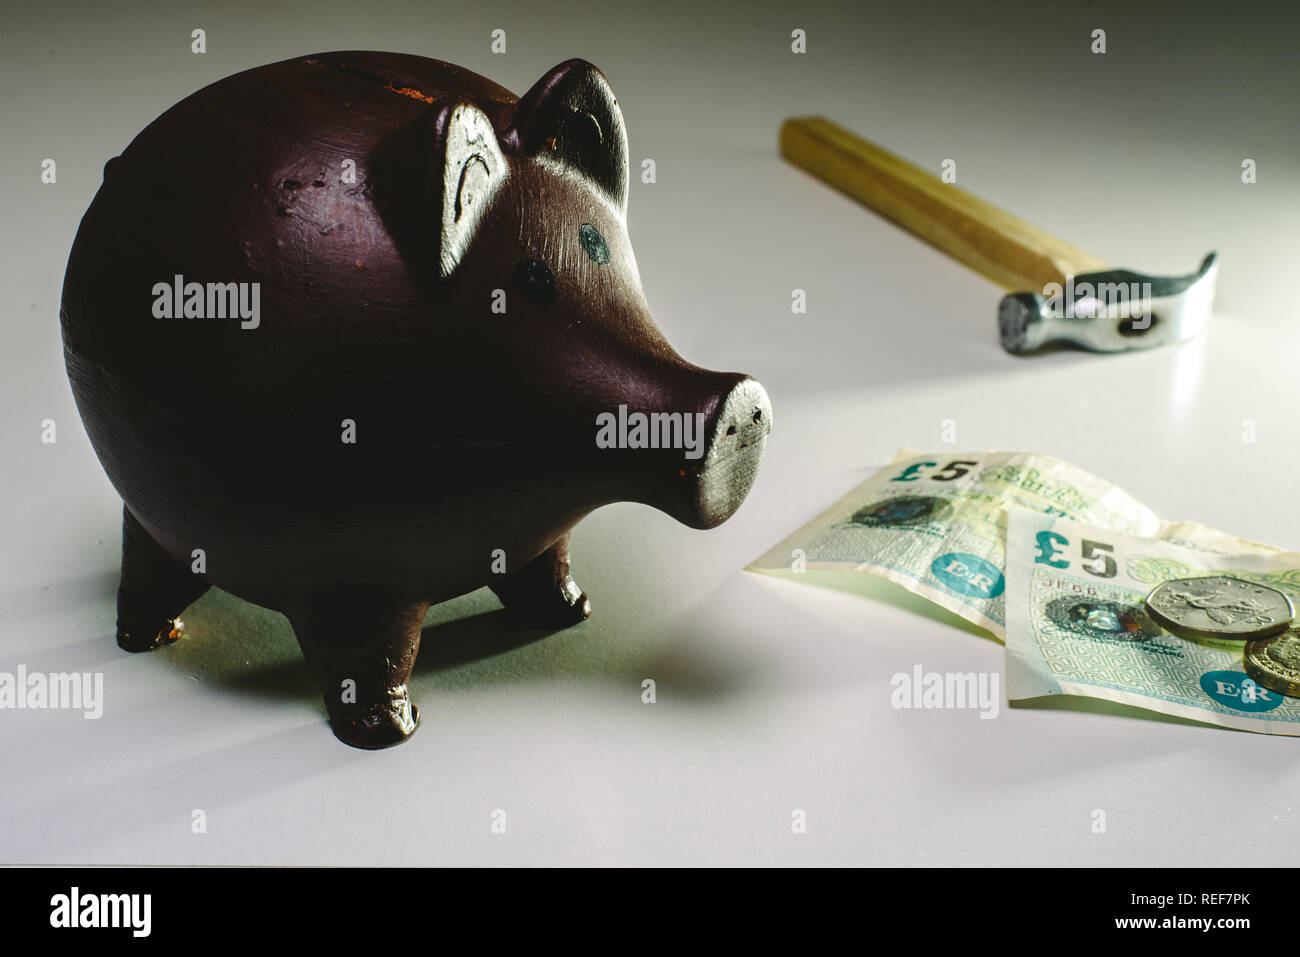 About to break piggy bank with English money to face savings in times of economic crisis. - Stock Image